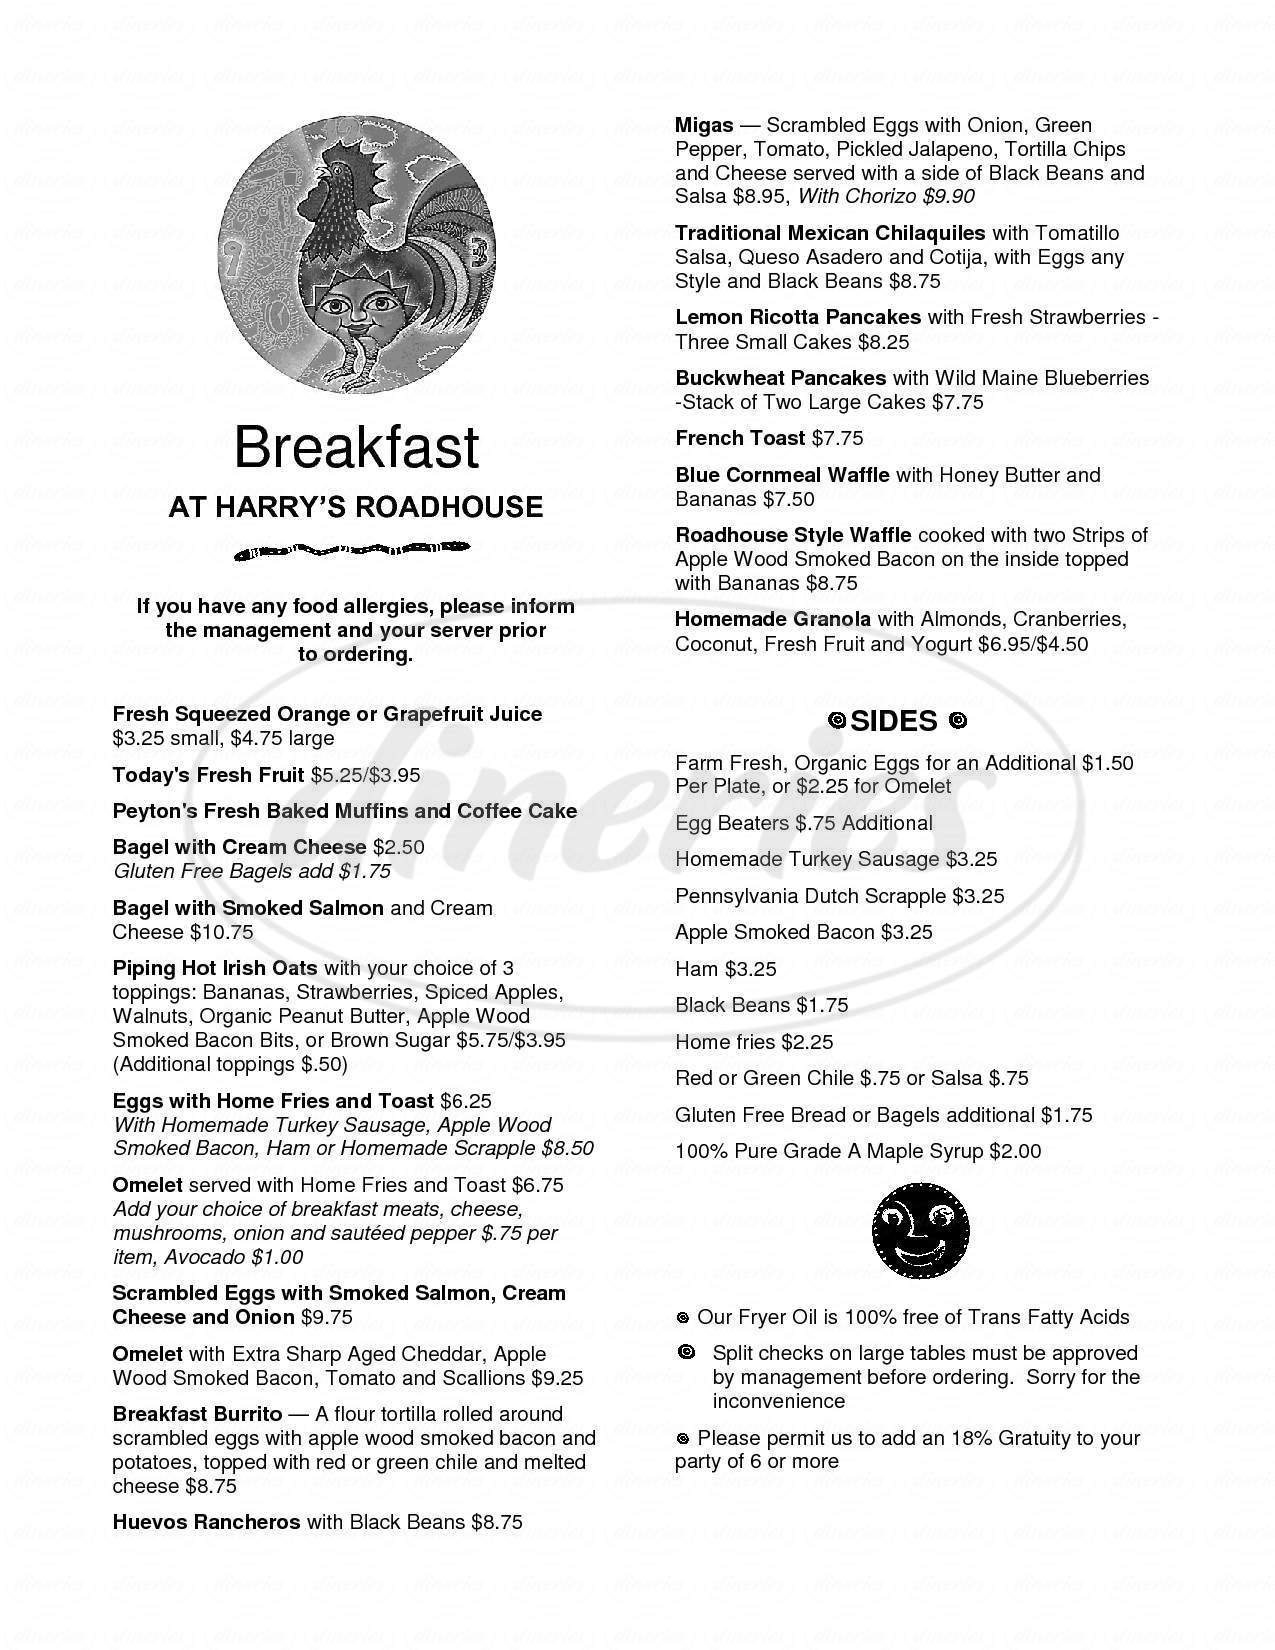 menu for Harry's Roadhouse